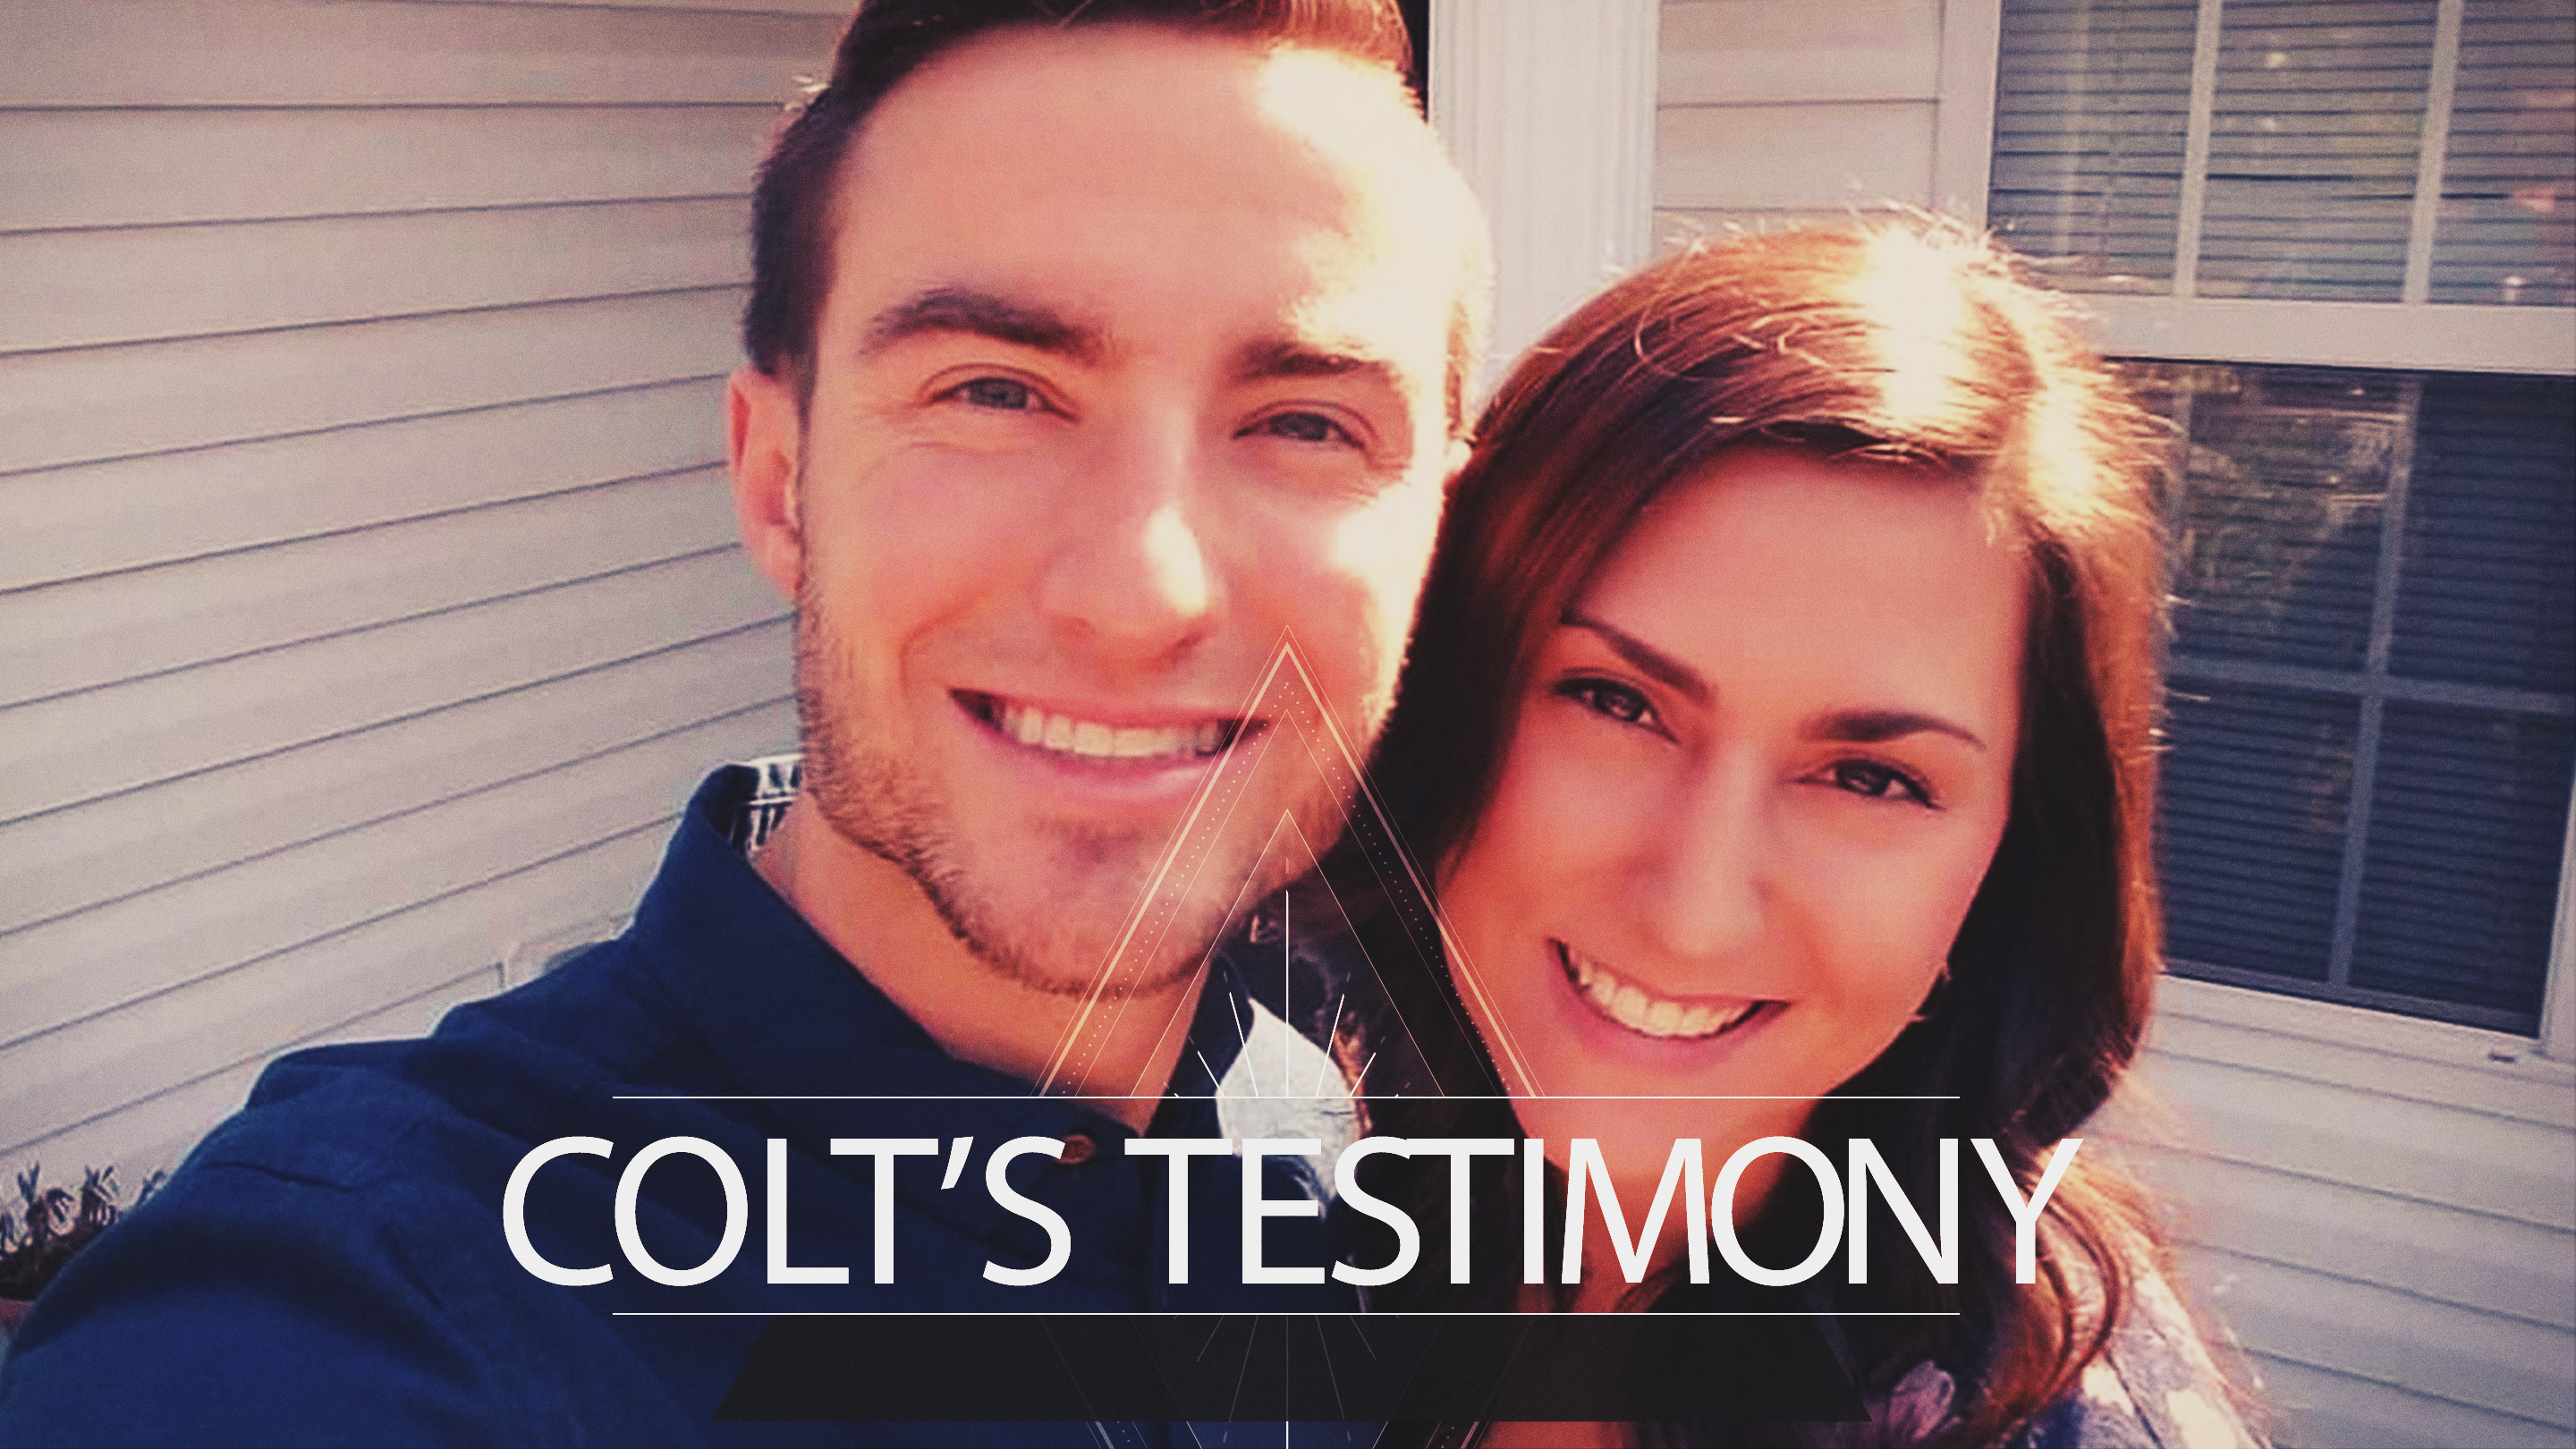 colttestimony